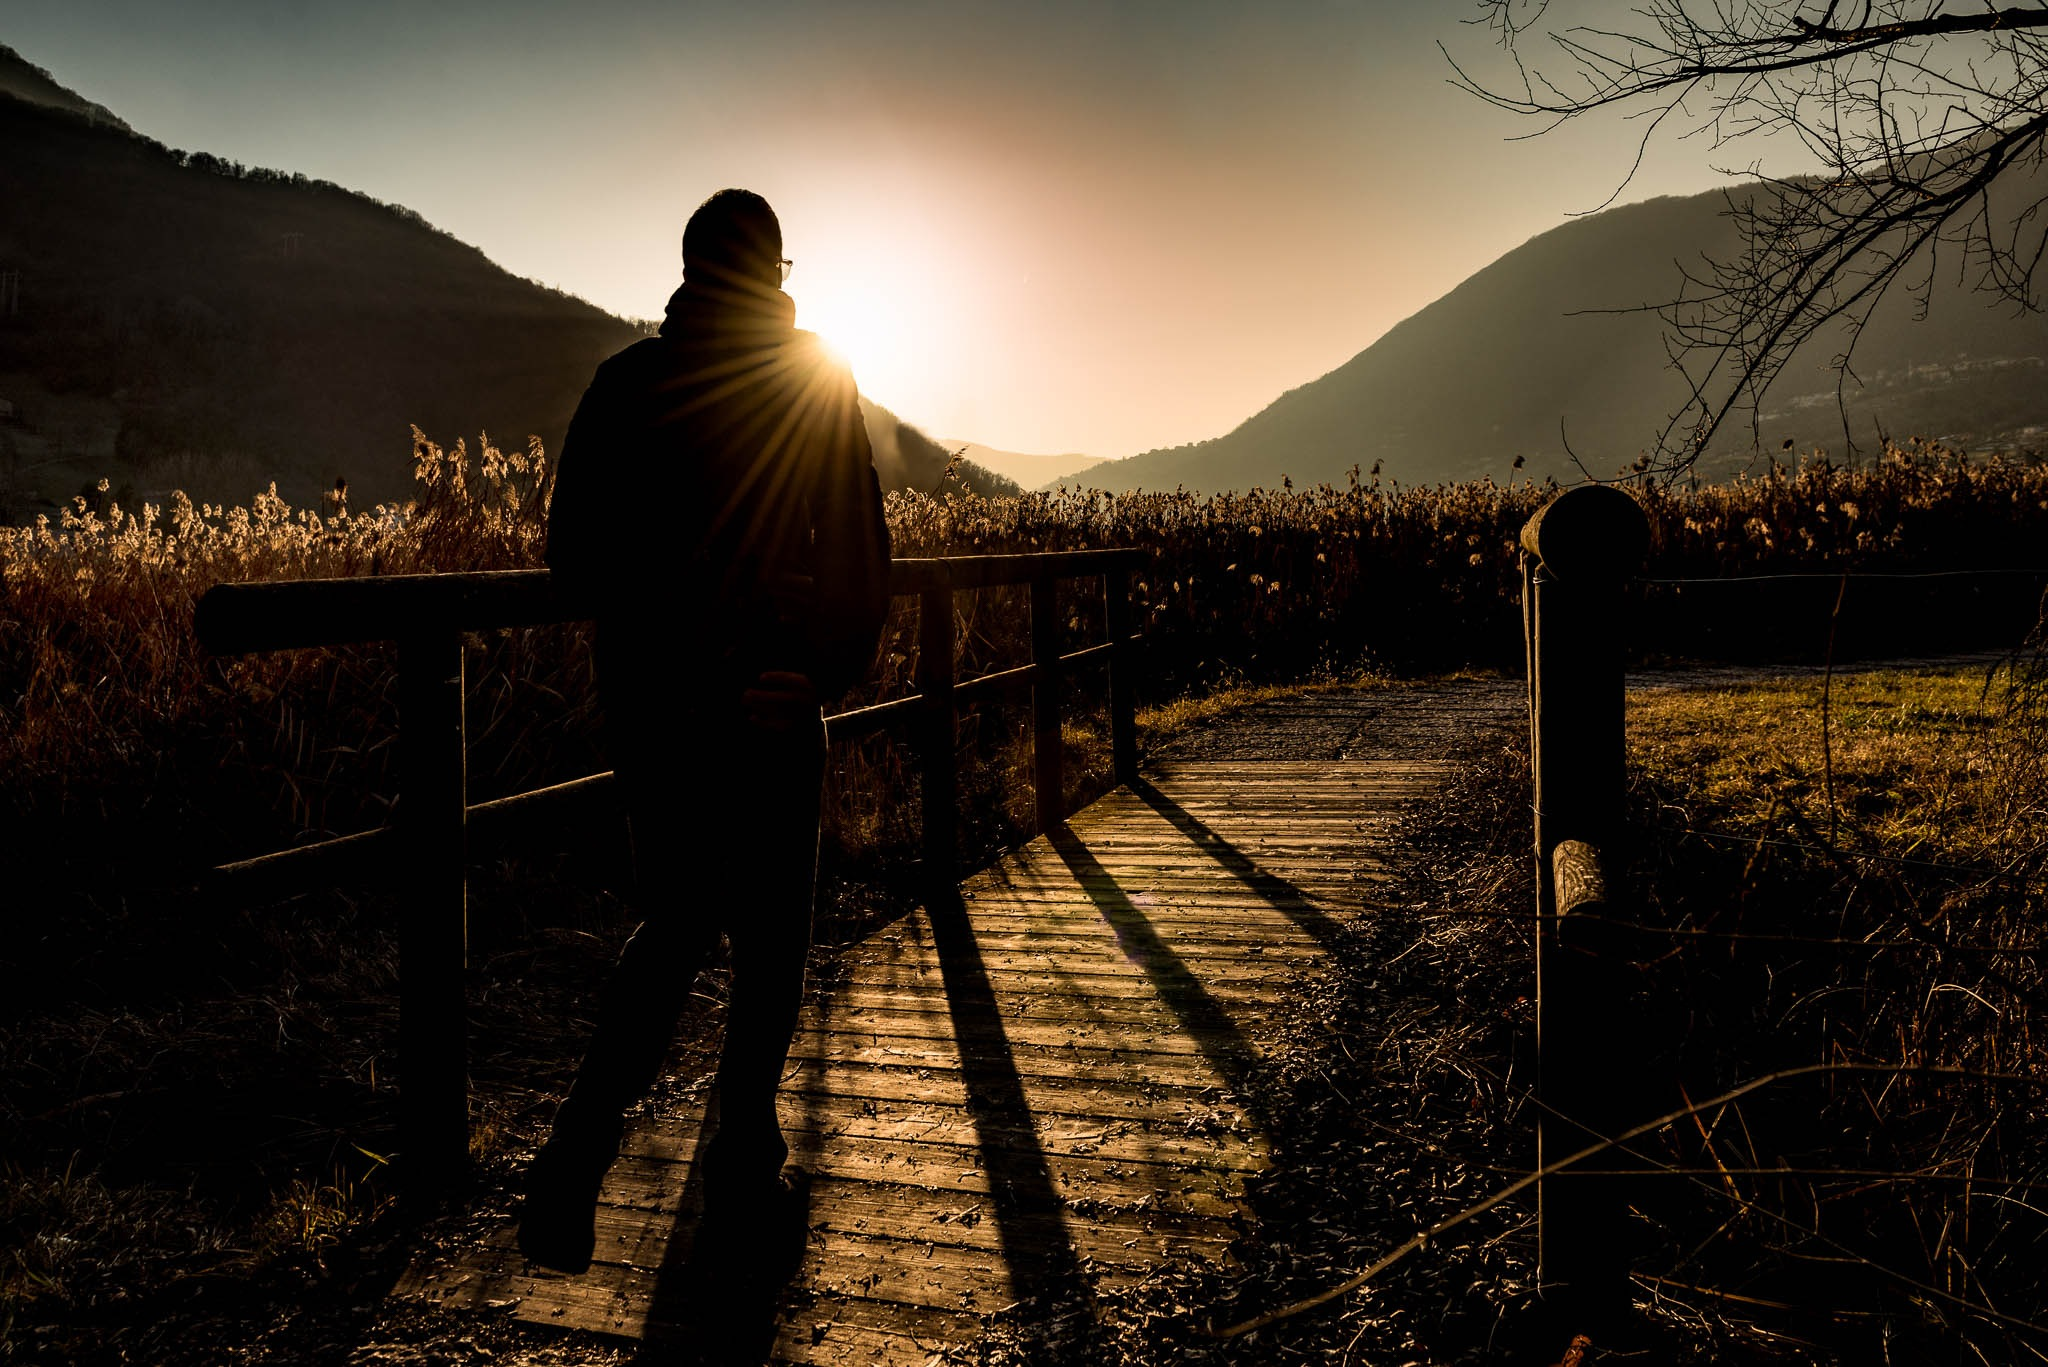 Walking in the golden hour by roberto.fustinoni.60